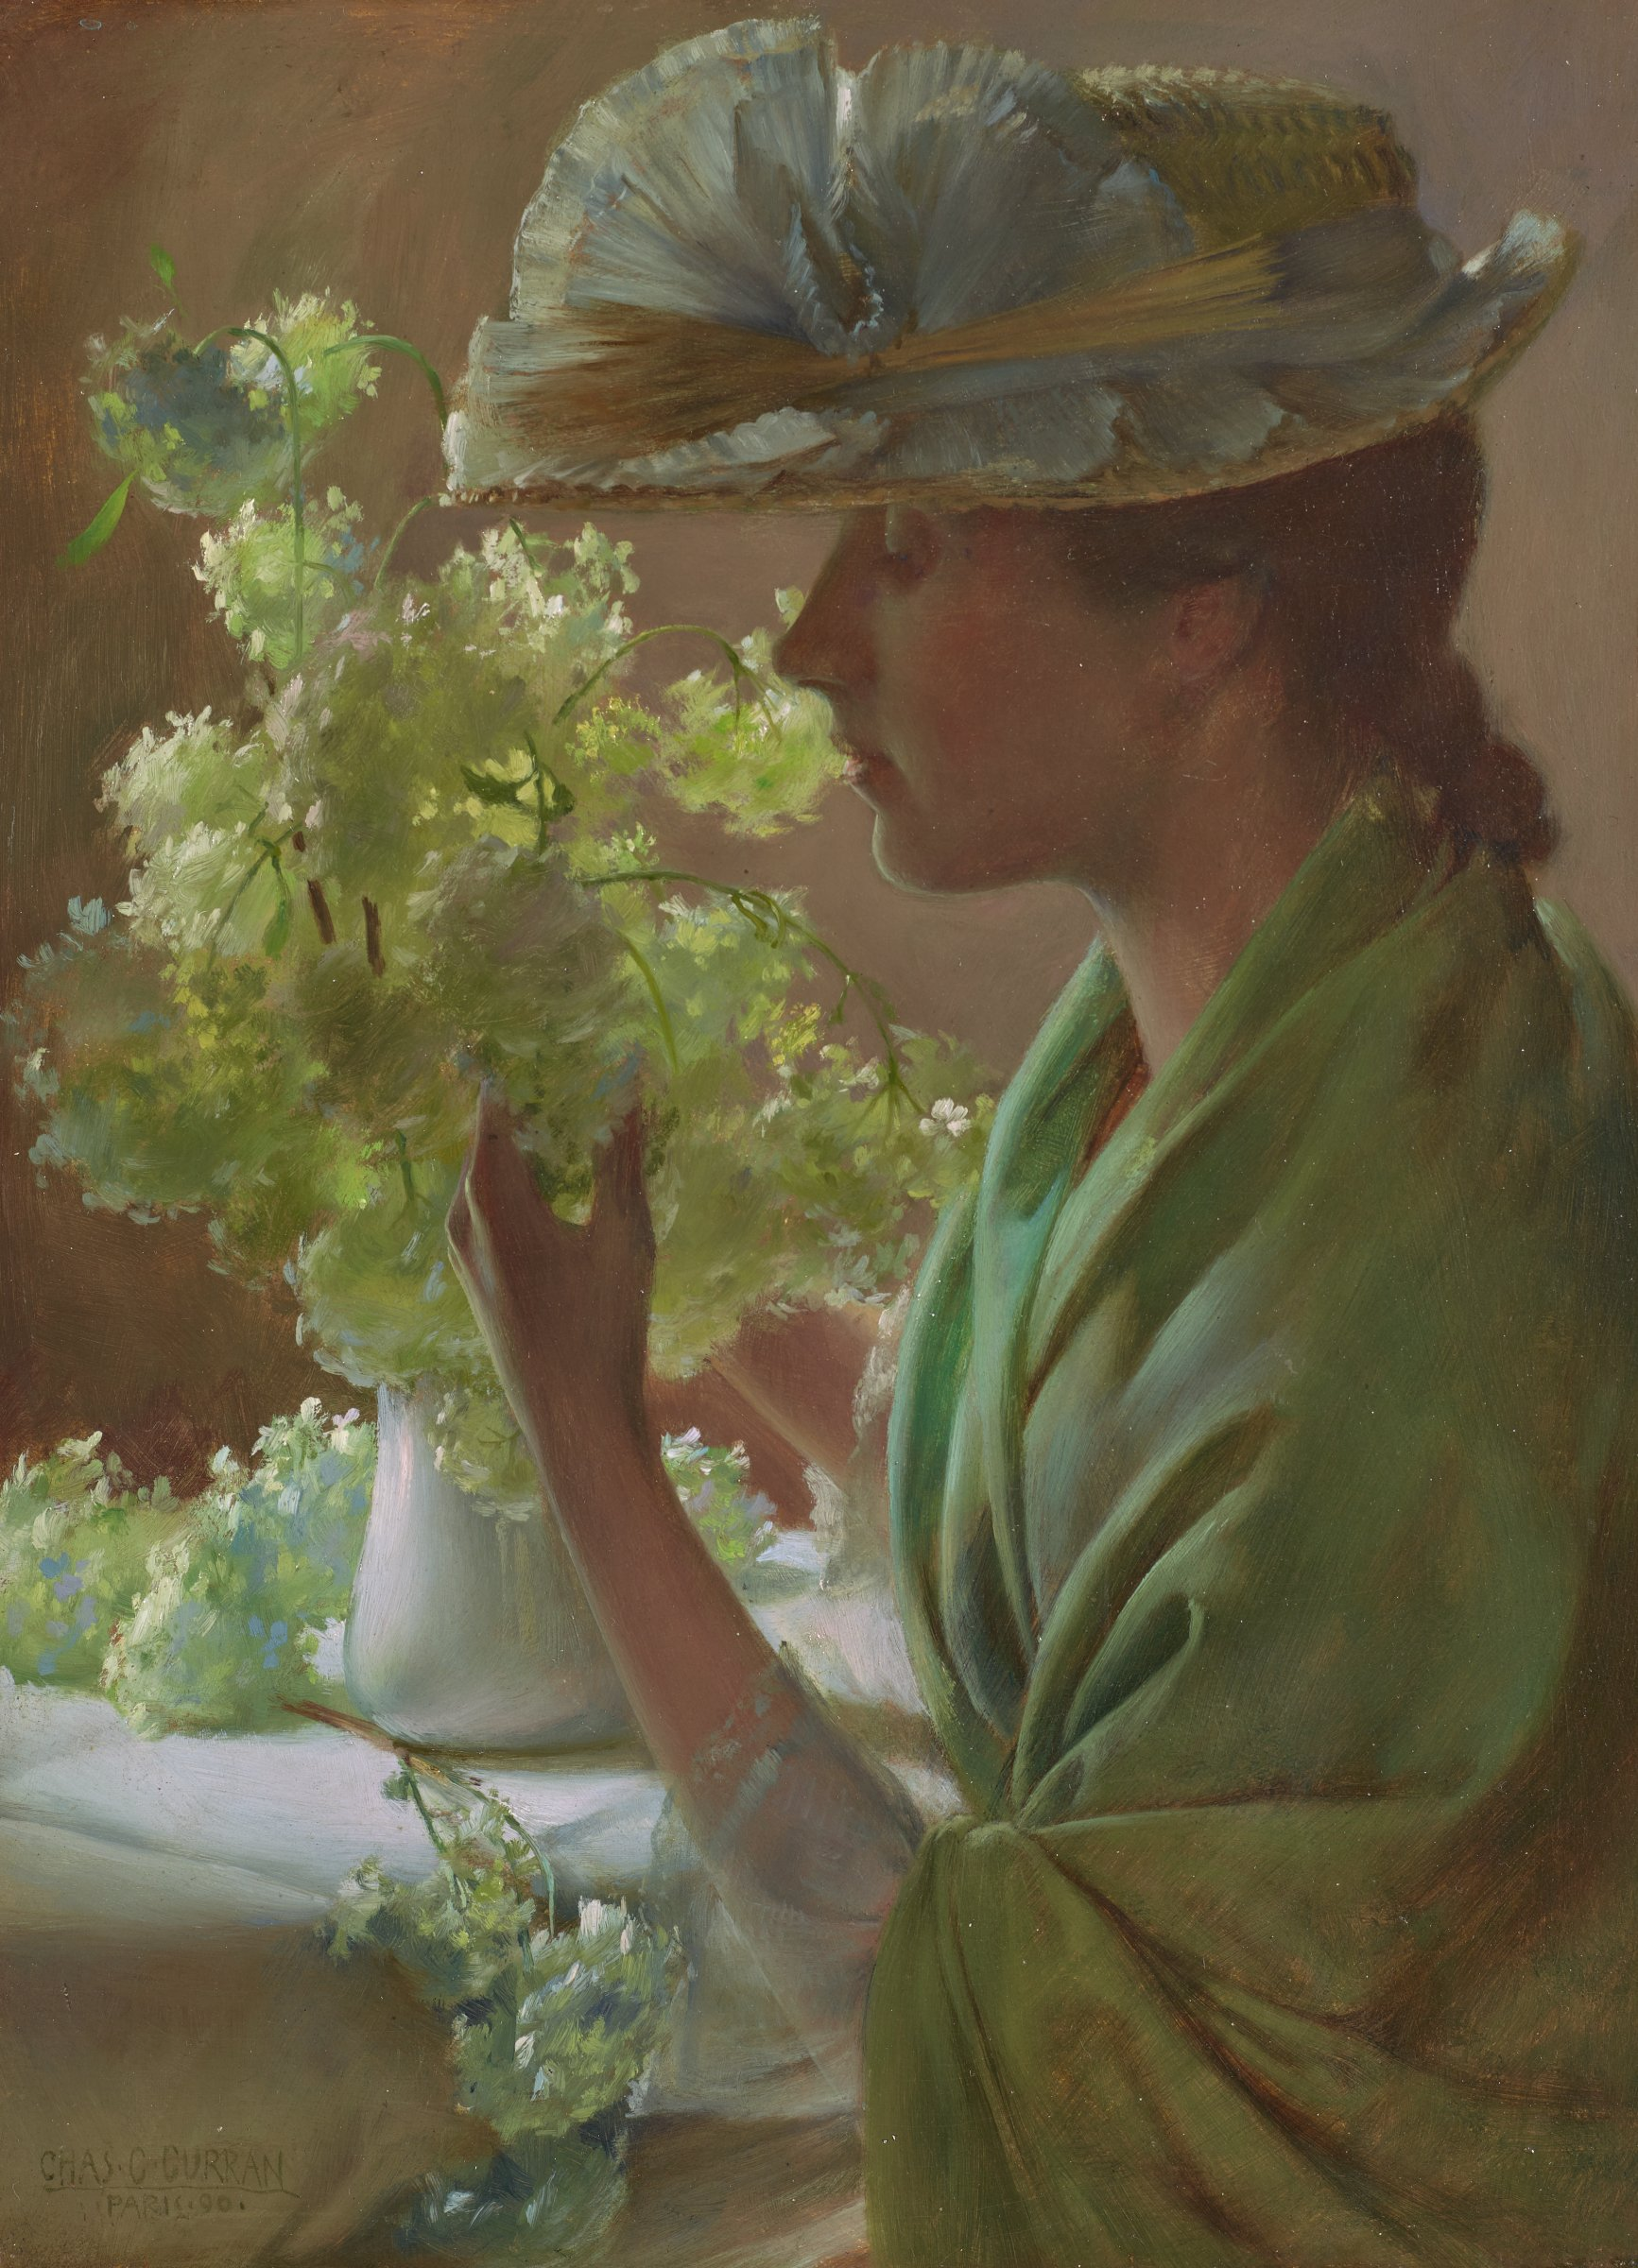 Lady with a Bouquet (Snowballs), Charles Courtney Curran, oil on wood panel